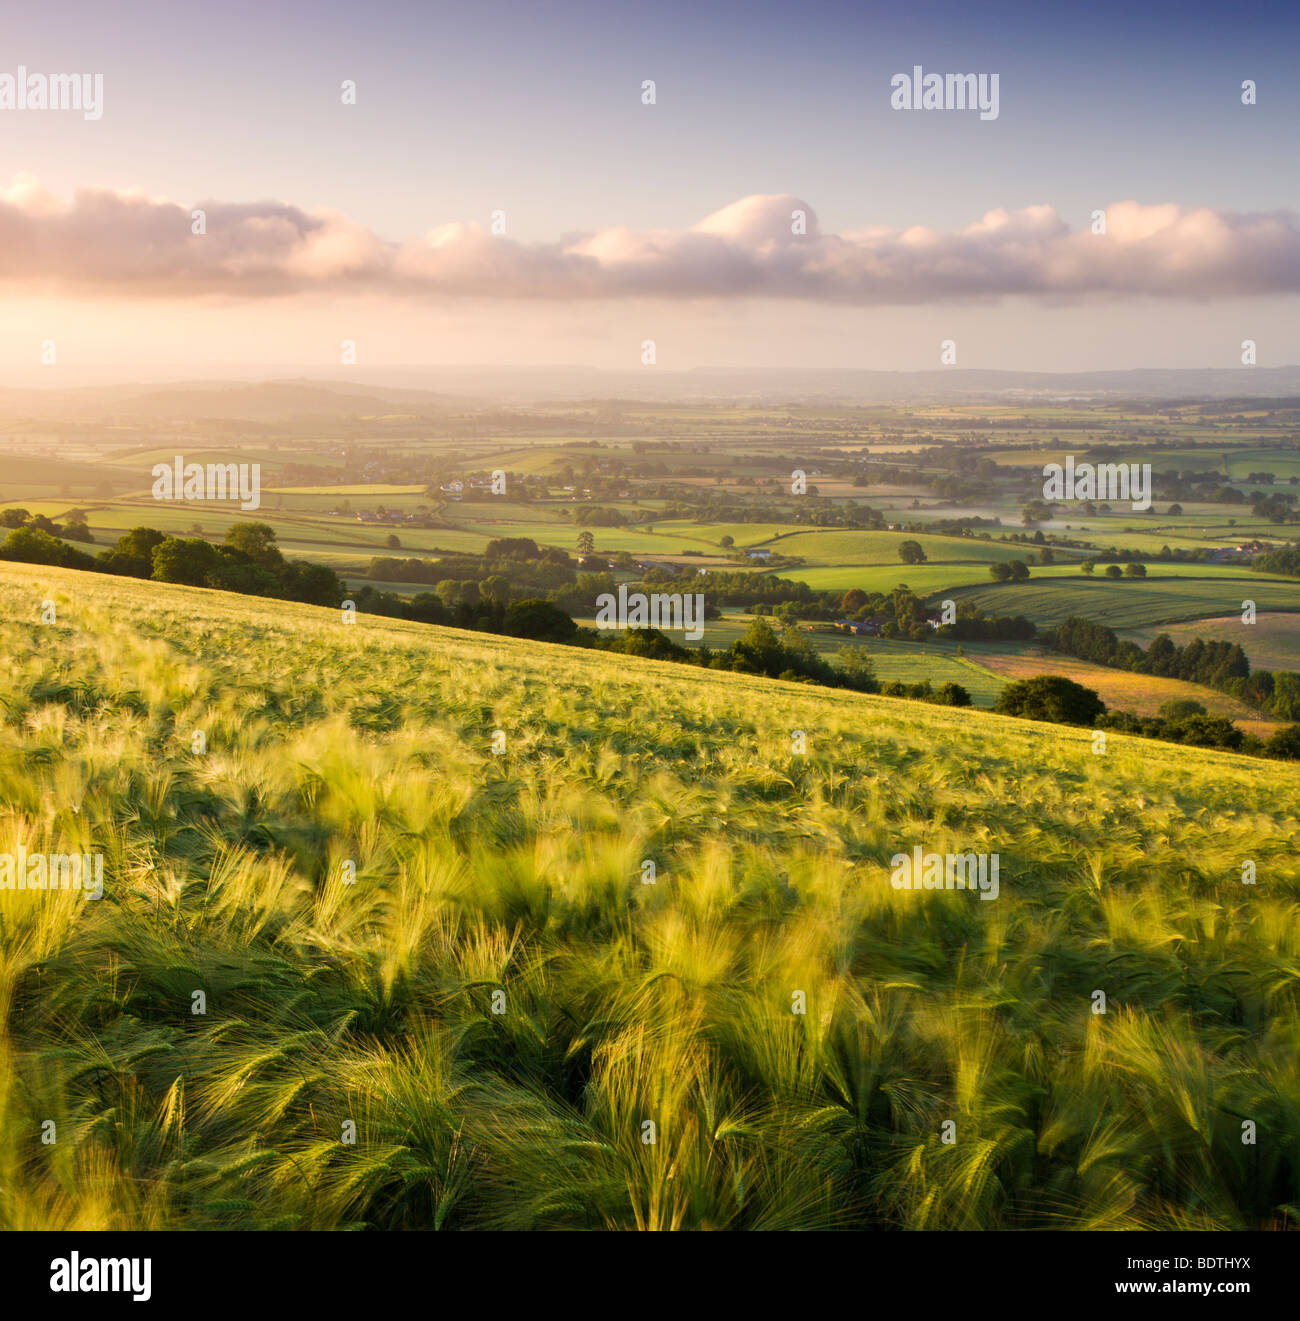 Golden ripened barley growing in a field in rural Devon, England. Summer (June) 2009 Stock Photo